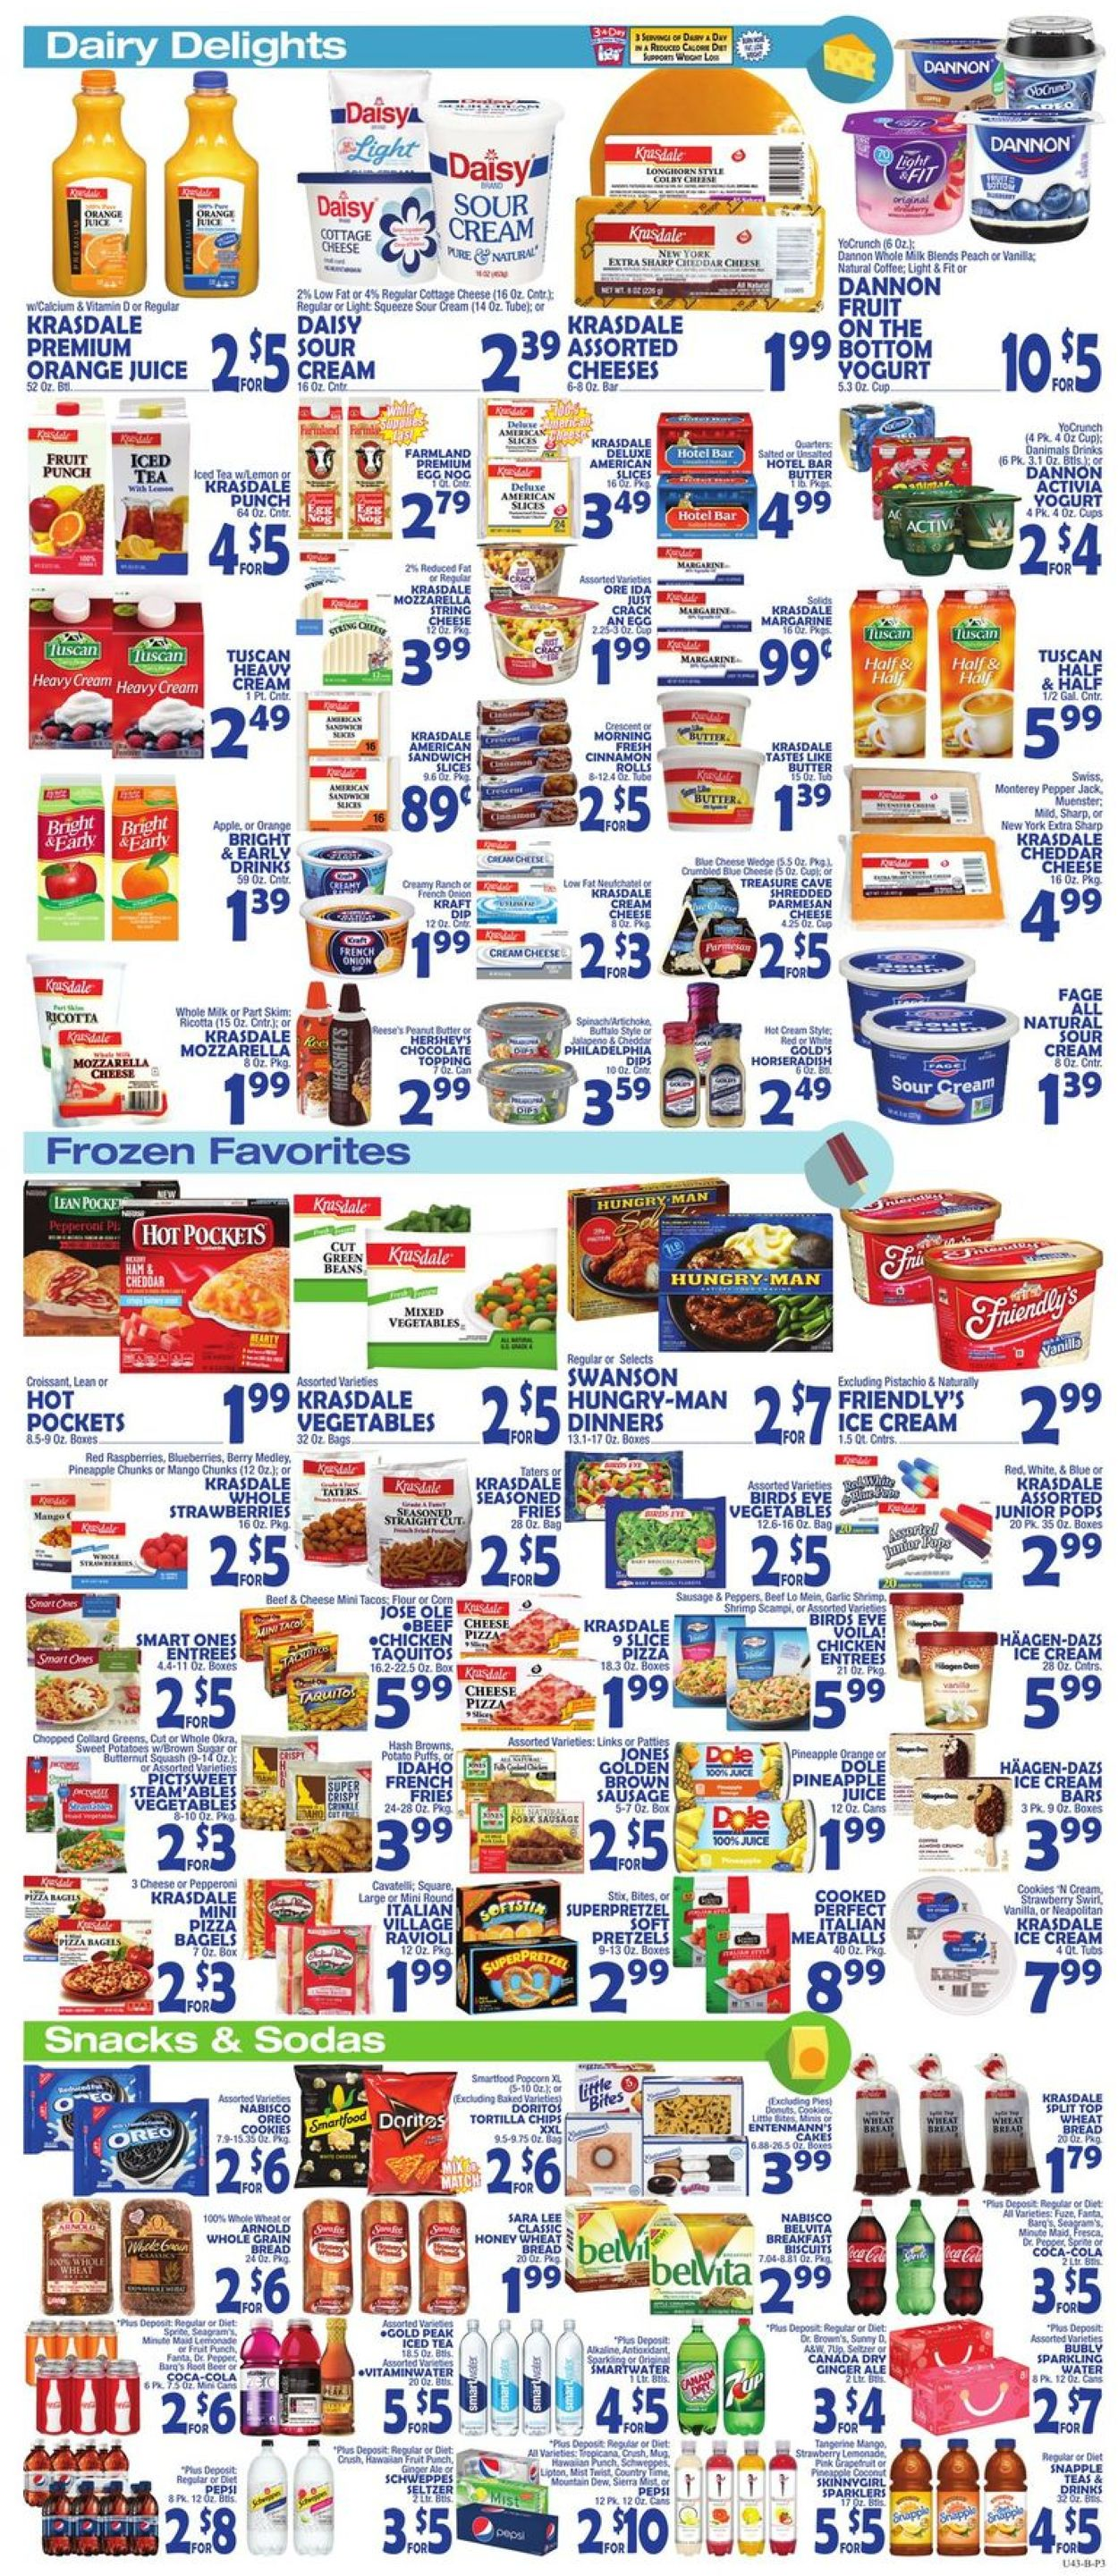 Catalogue Bravo Supermarkets - Winter Sale 2020 from 01/03/2020